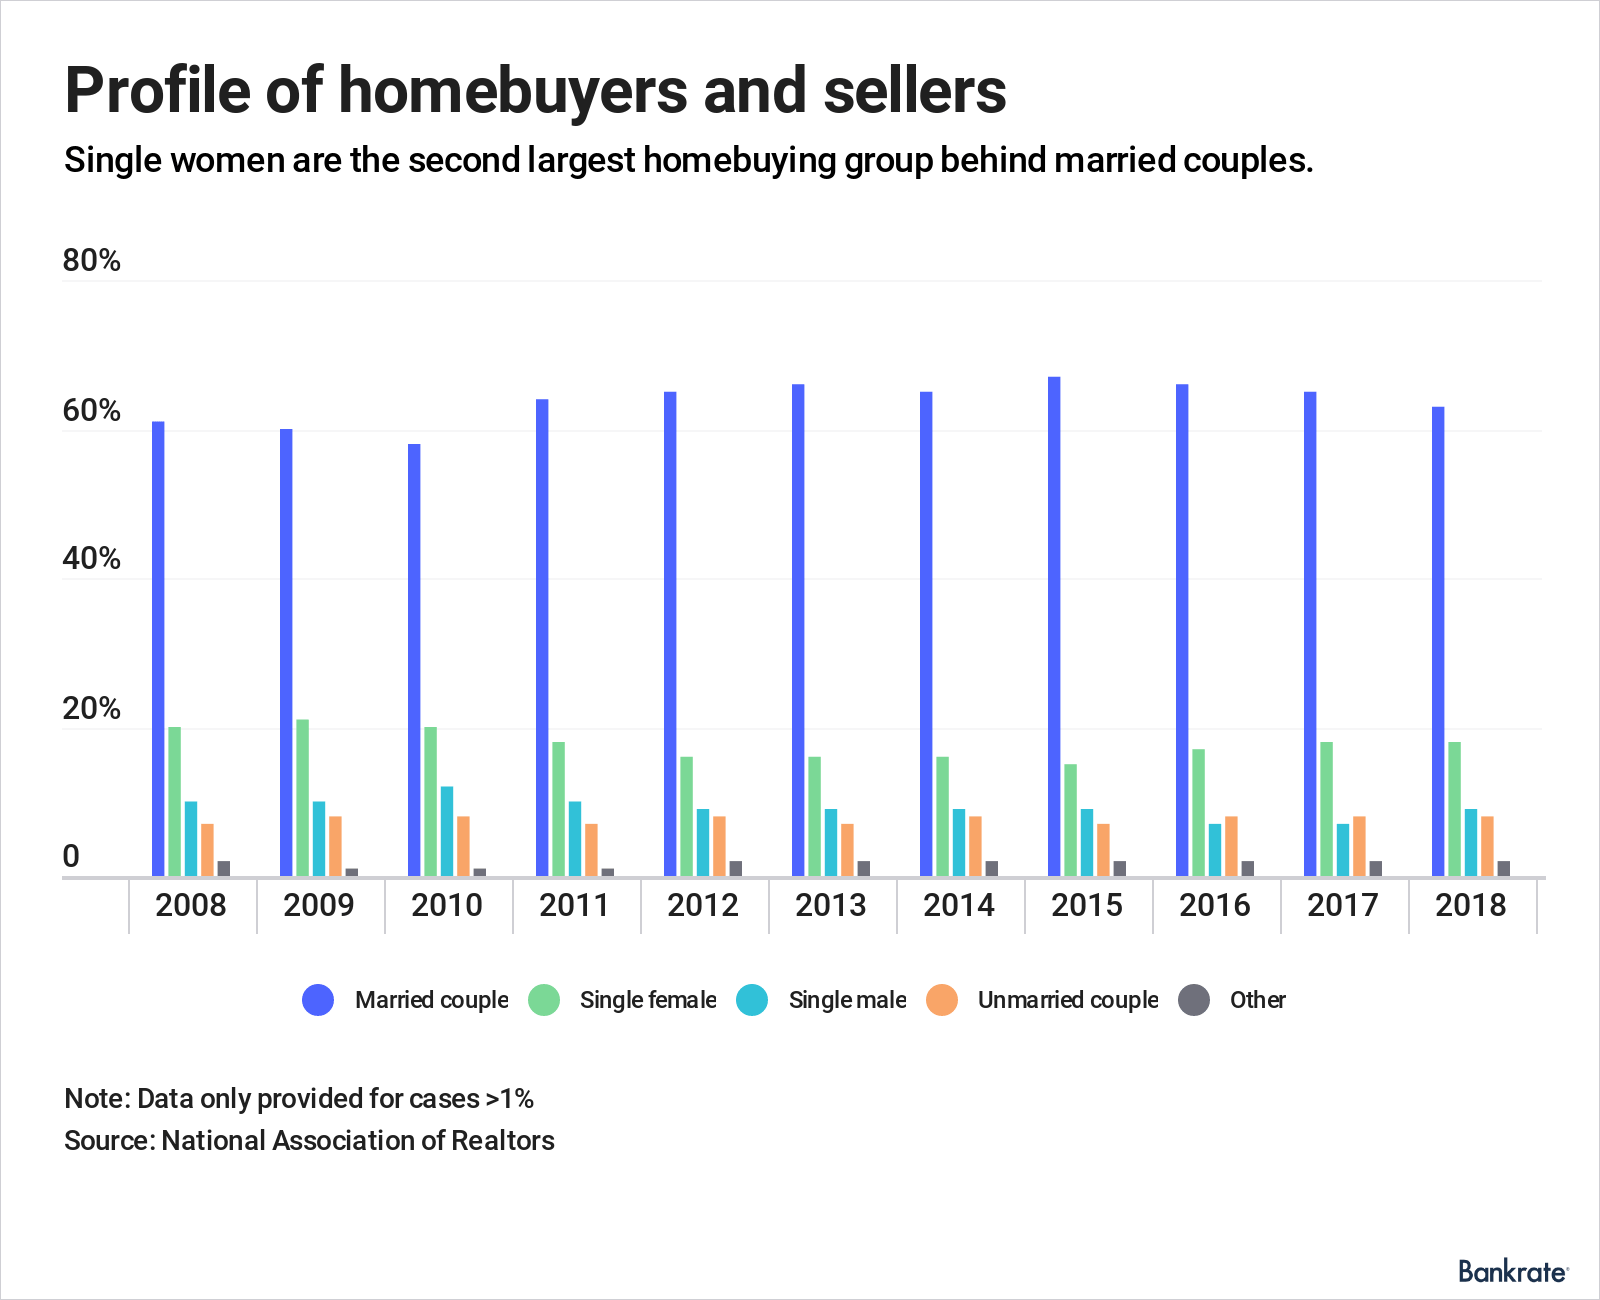 Single women are the second largest homebuying group behind couples